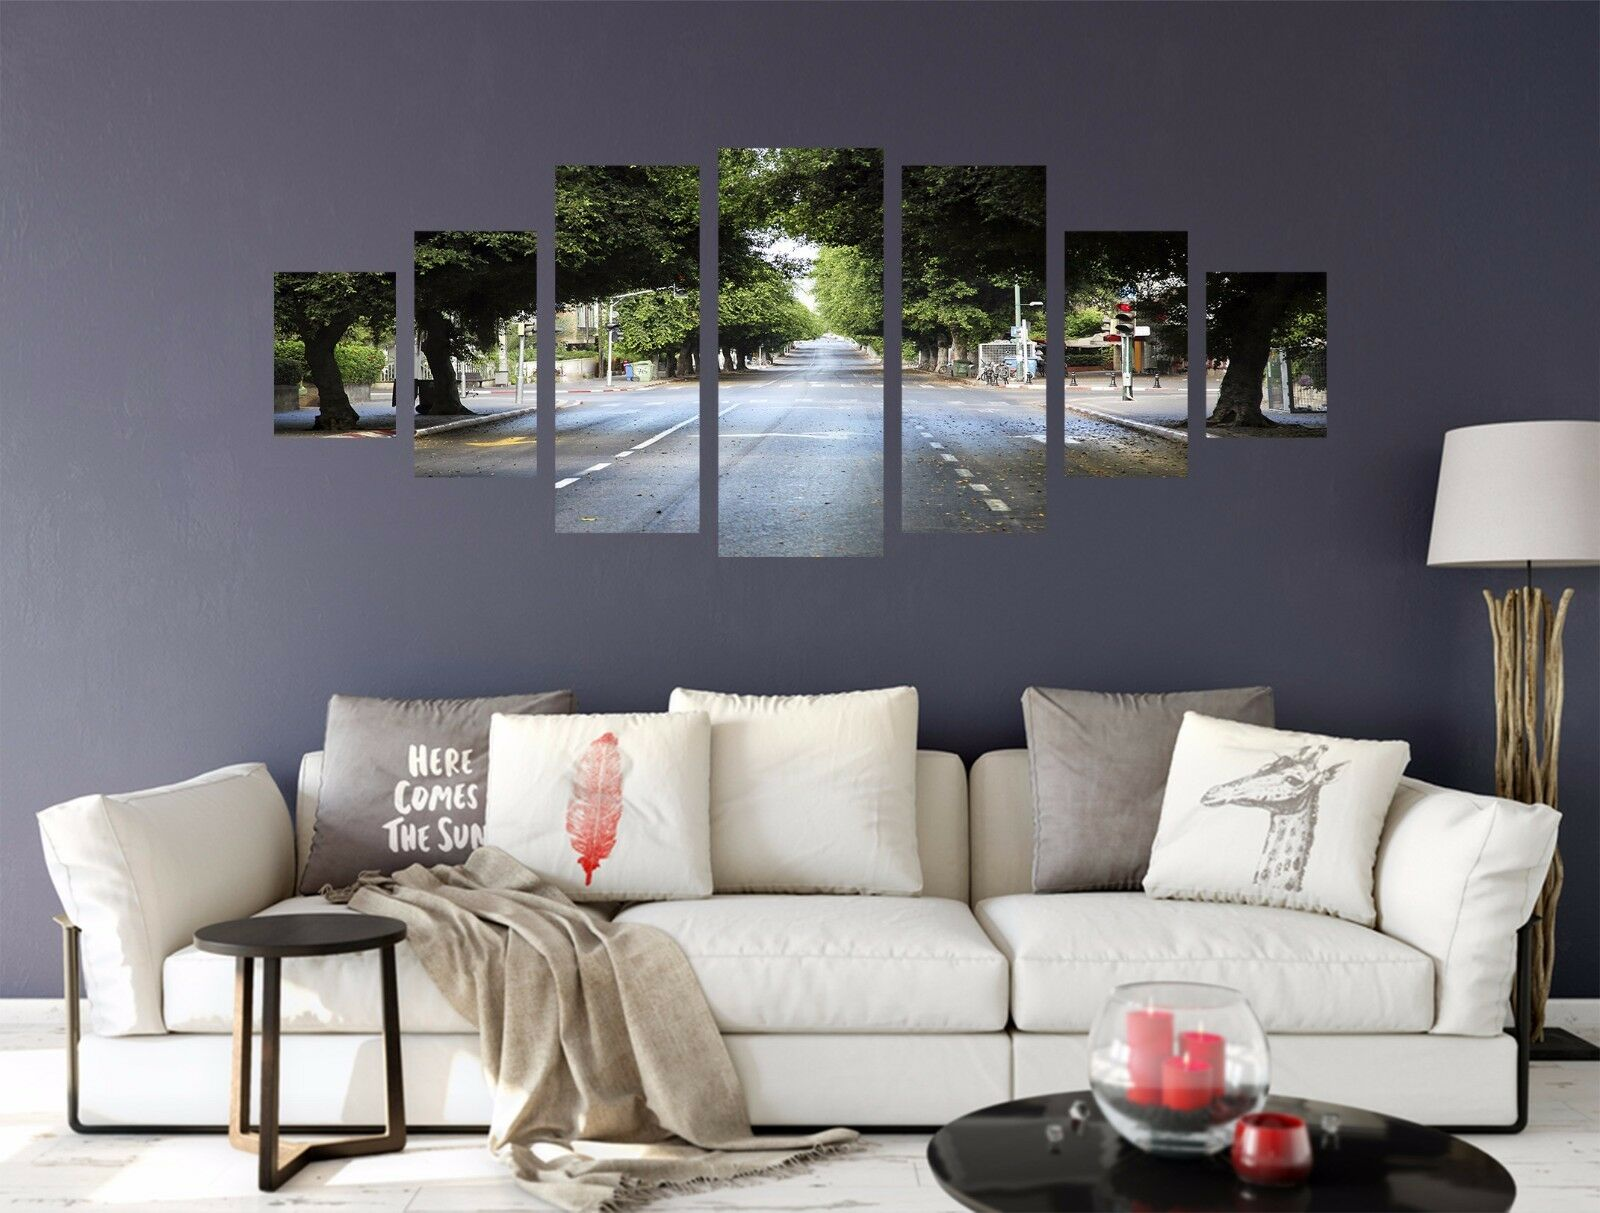 3D Boulevard Street 56 Unframed Print Wall Paper Decal Wall Deco Indoor AJ Wall